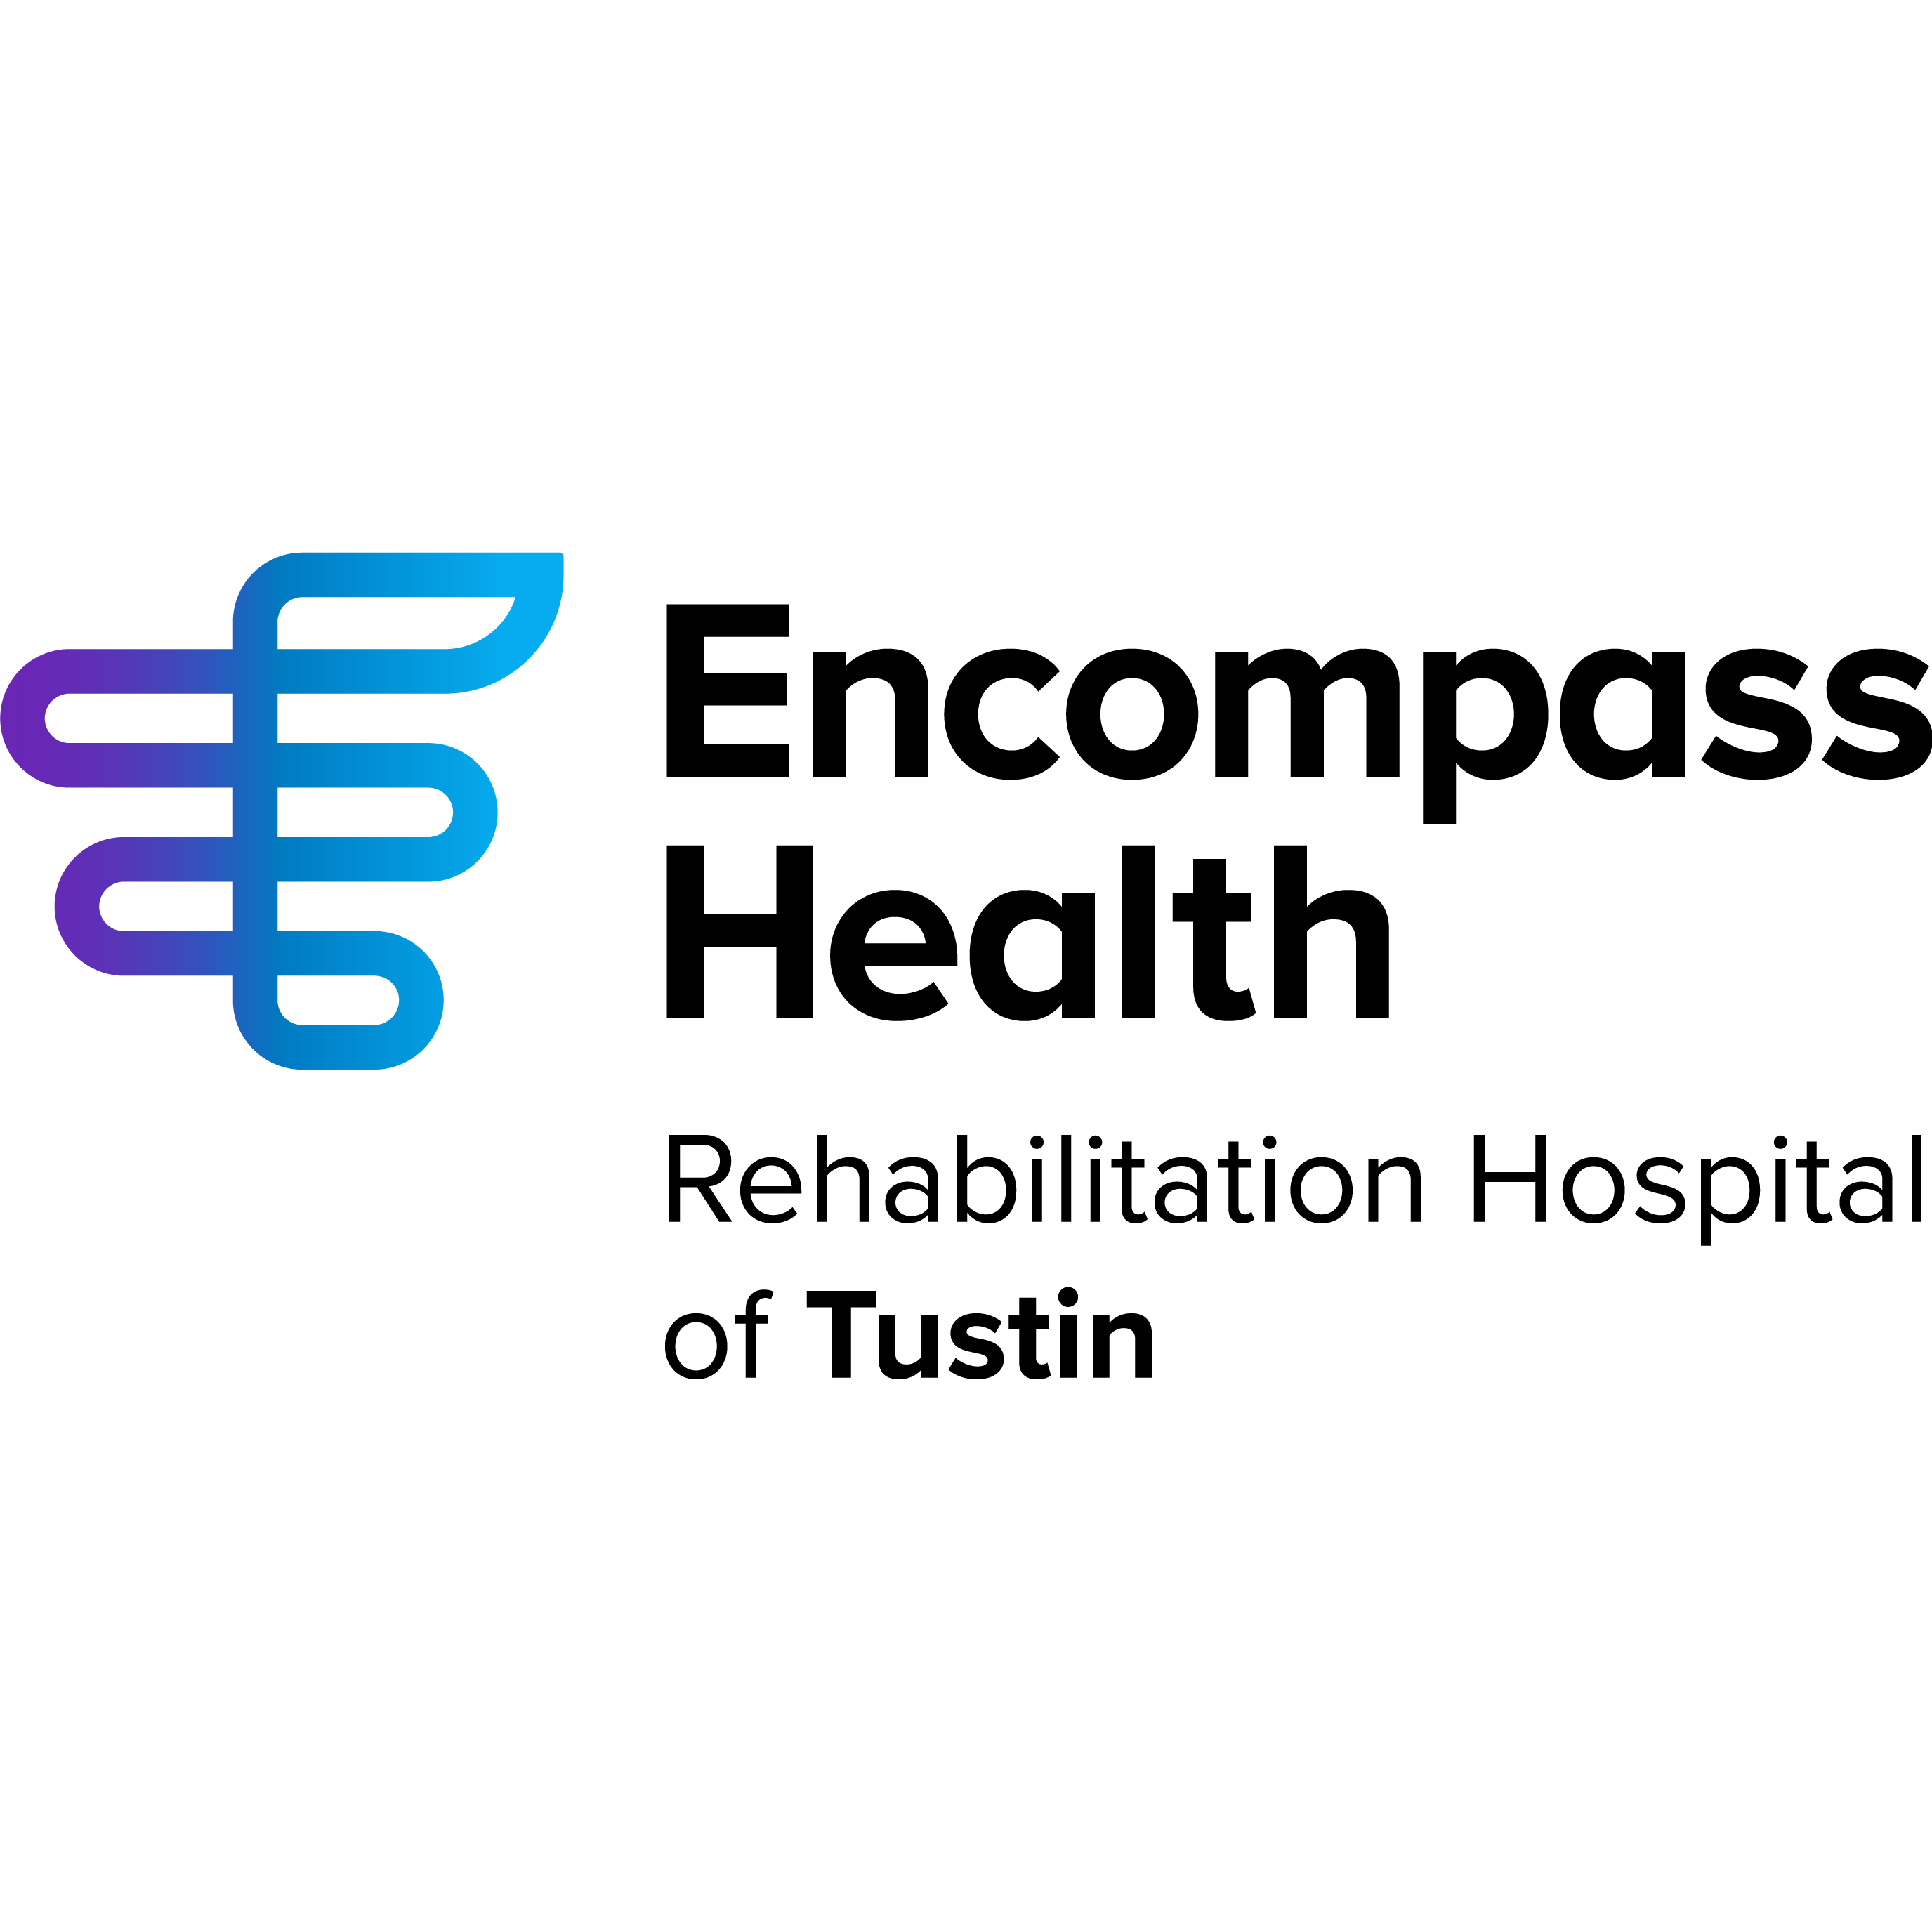 Encompass Health Rehabilitation Hospital of Tustin